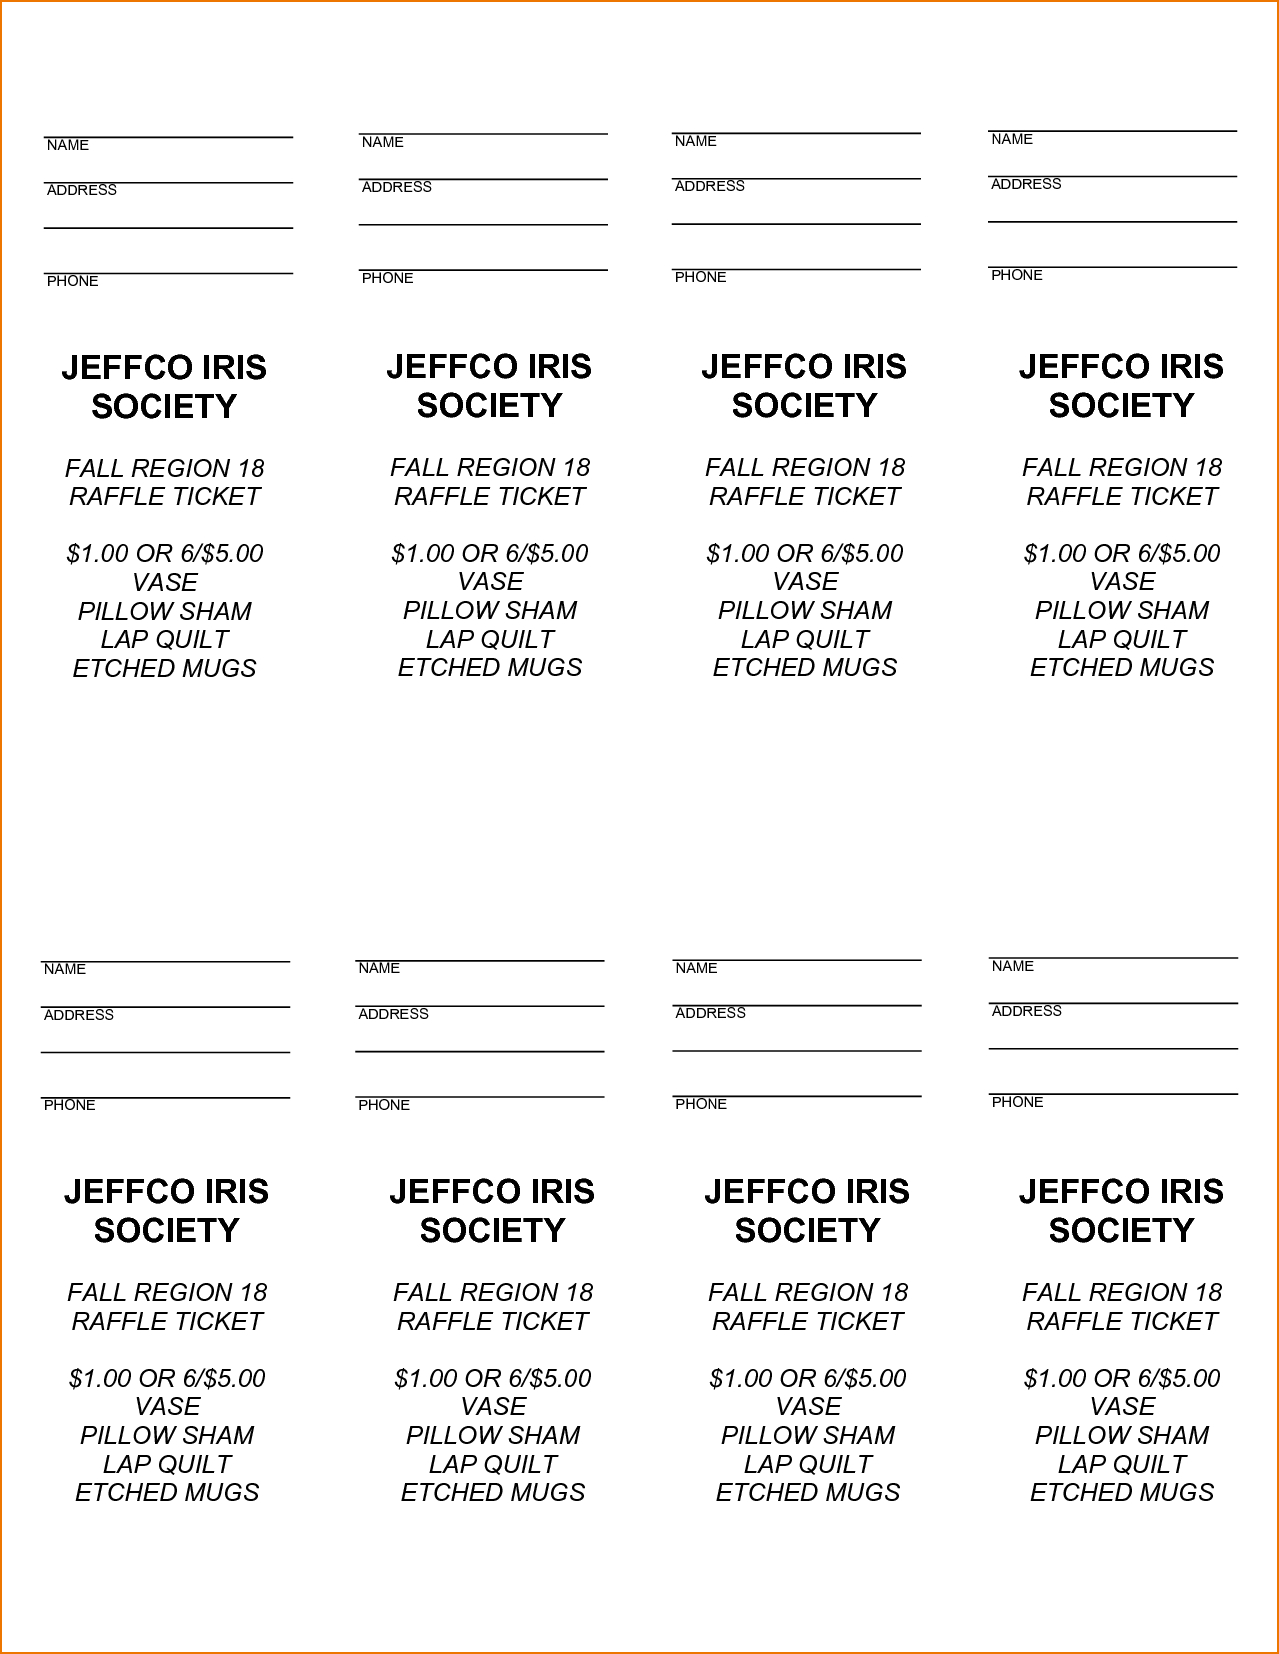 Free Printable Raffle Tickets With Stubs - Free Download - Free Printable Raffle Tickets With Stubs